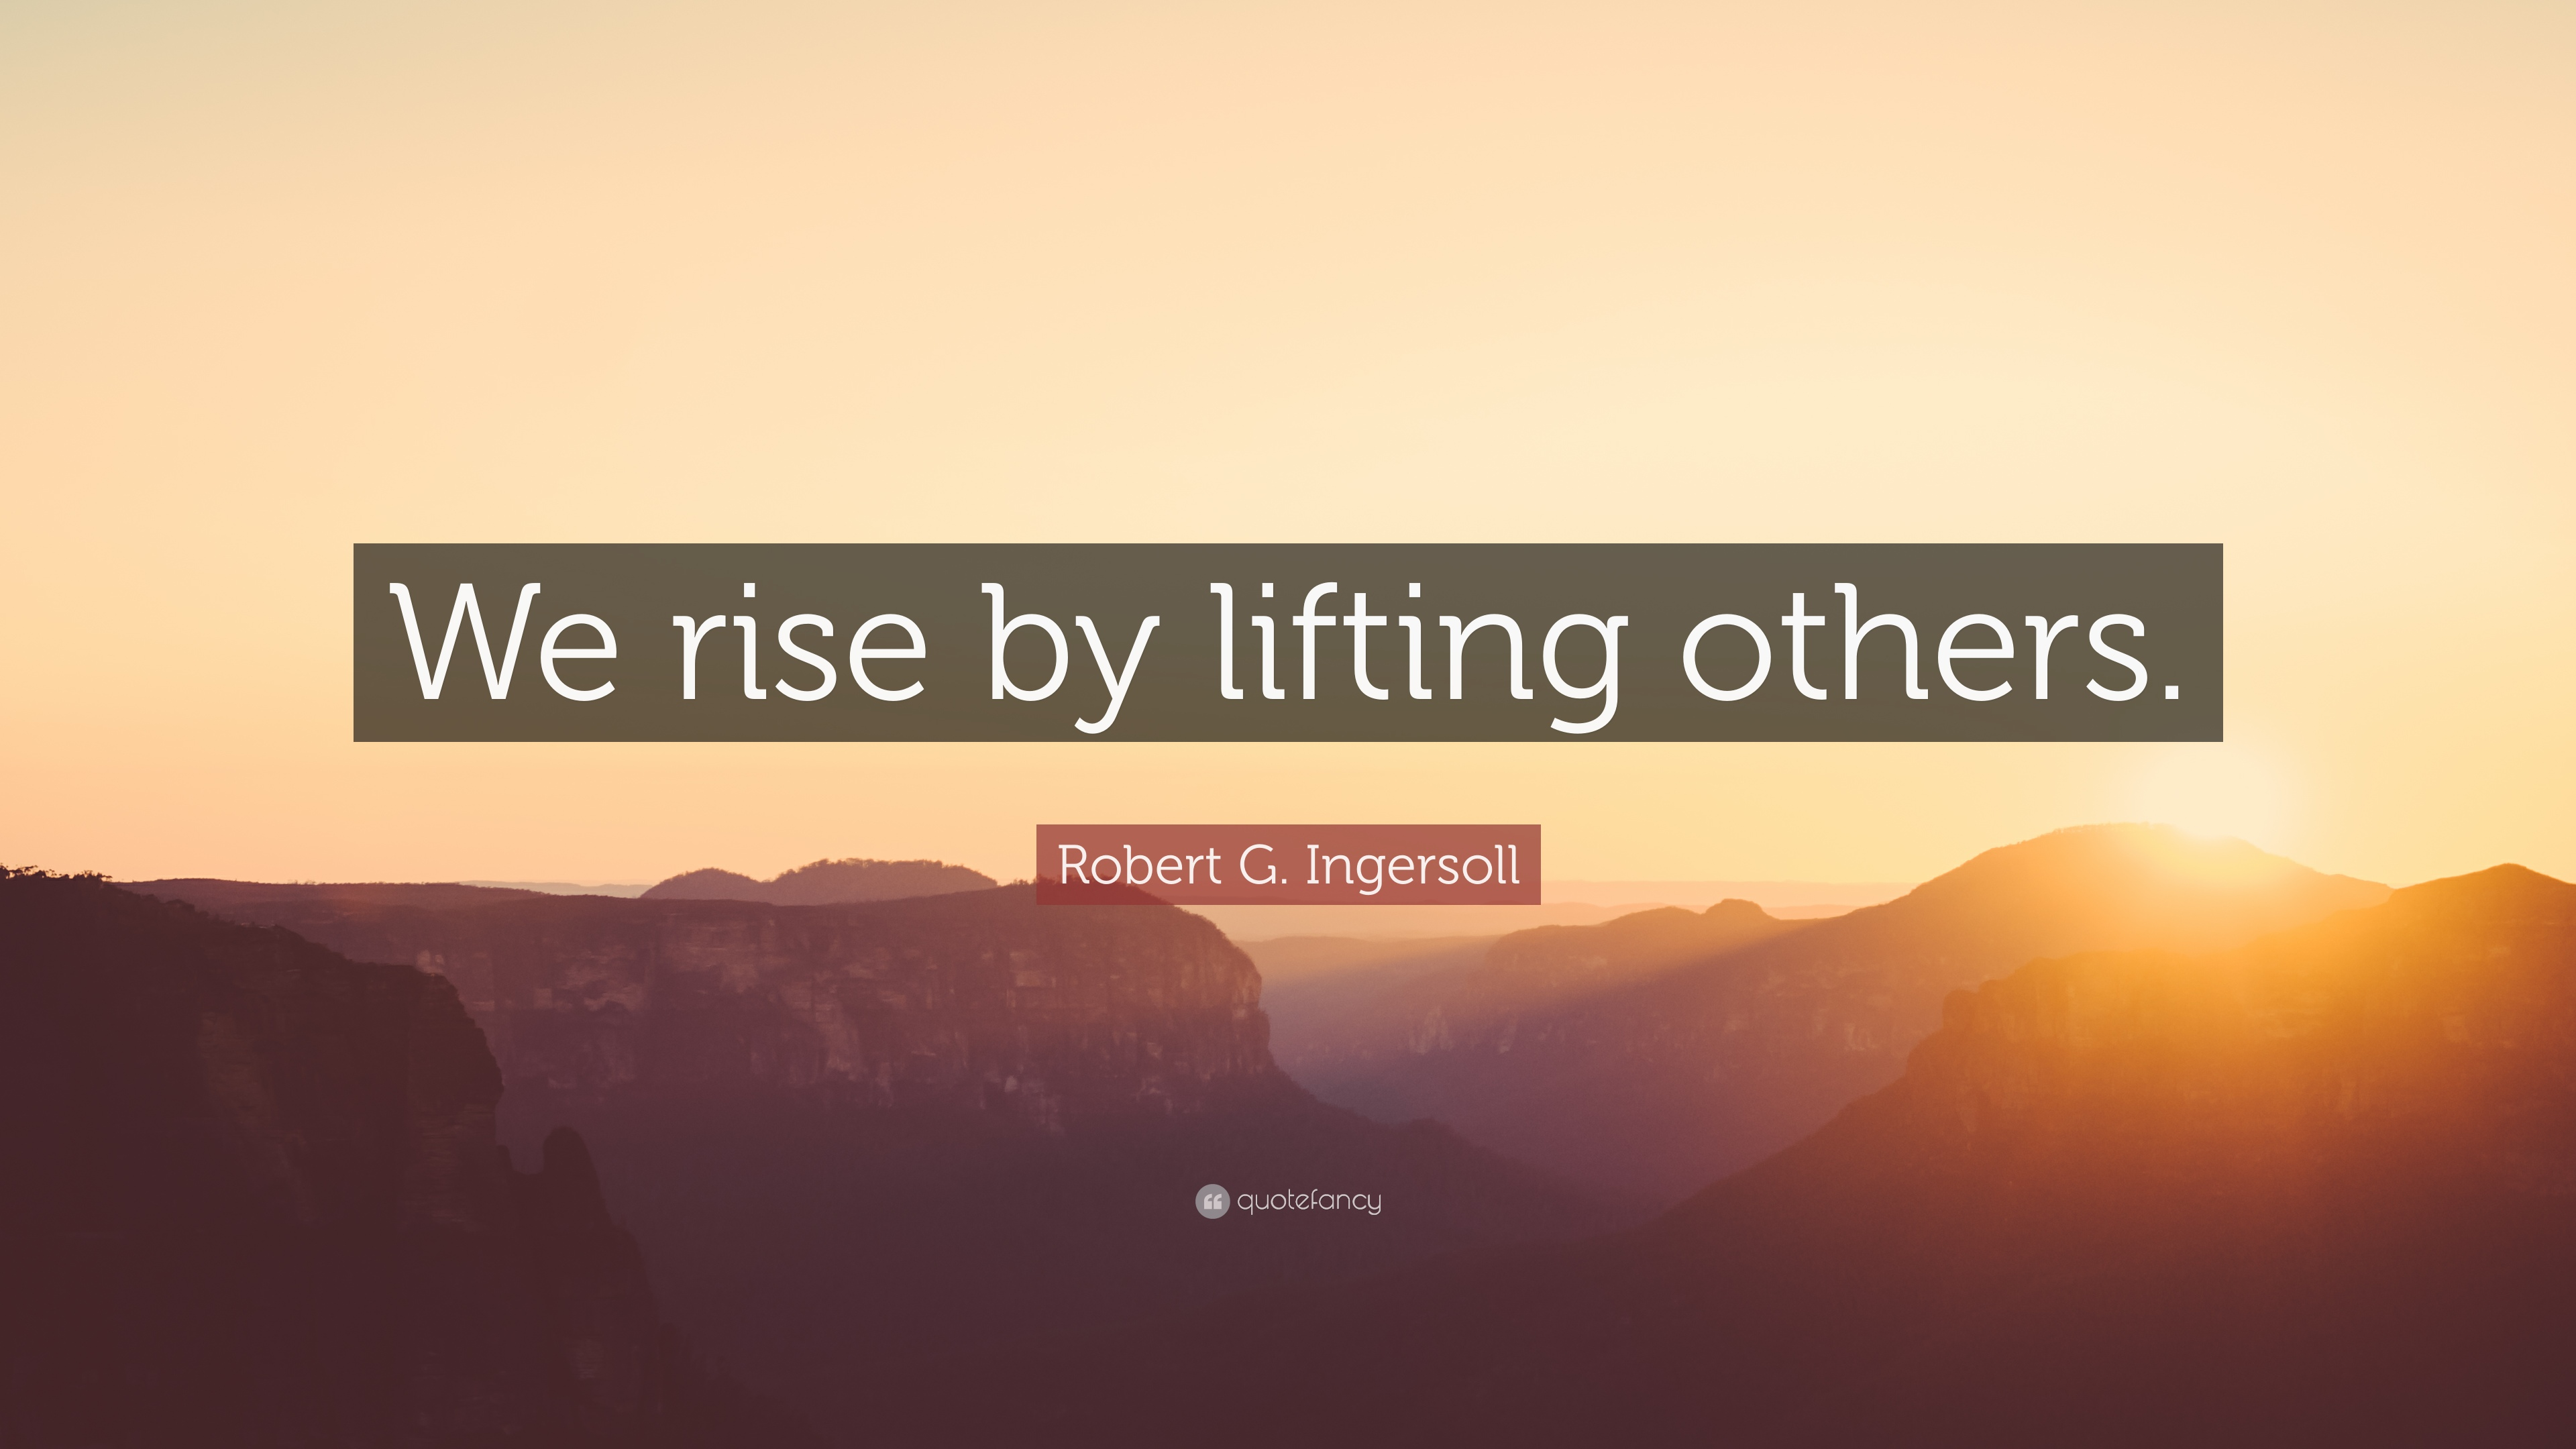 Quotes About Inspiring Others Helping Others Quotes 40 Wallpapers  Quotefancy